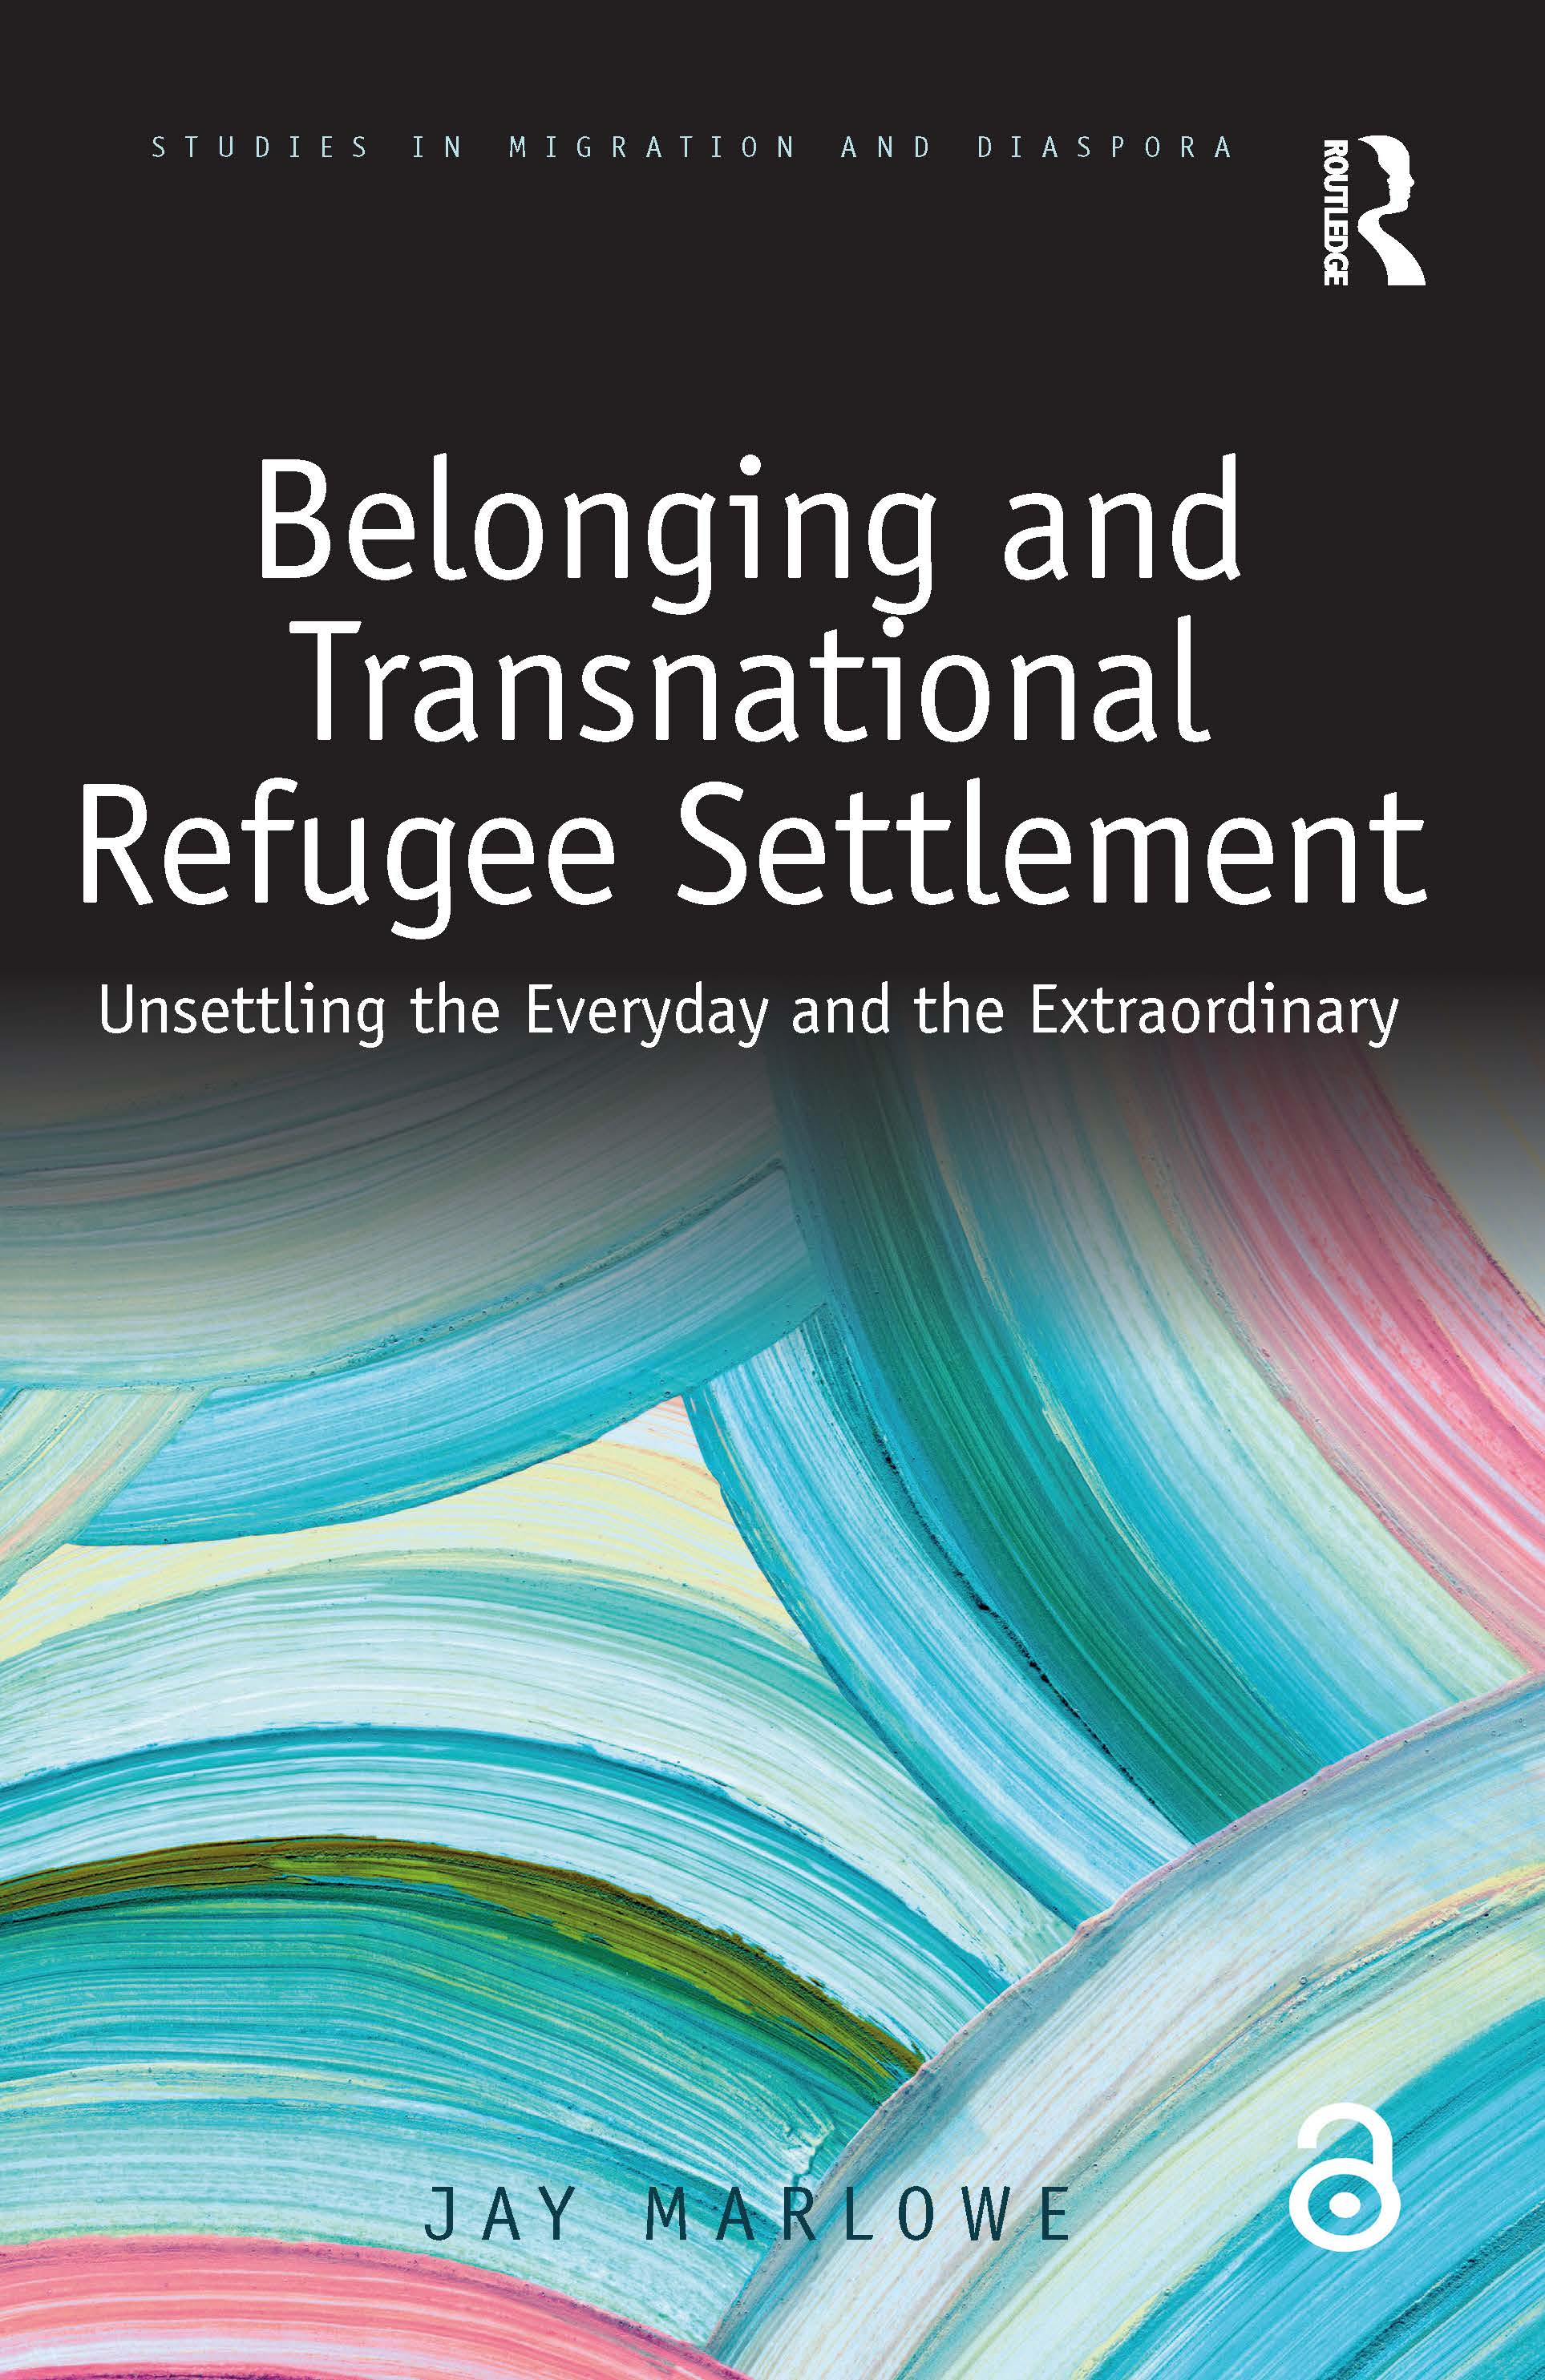 Belonging and Transnational Refugee Settlement: Unsettling the Everyday and the Extraordinary book cover